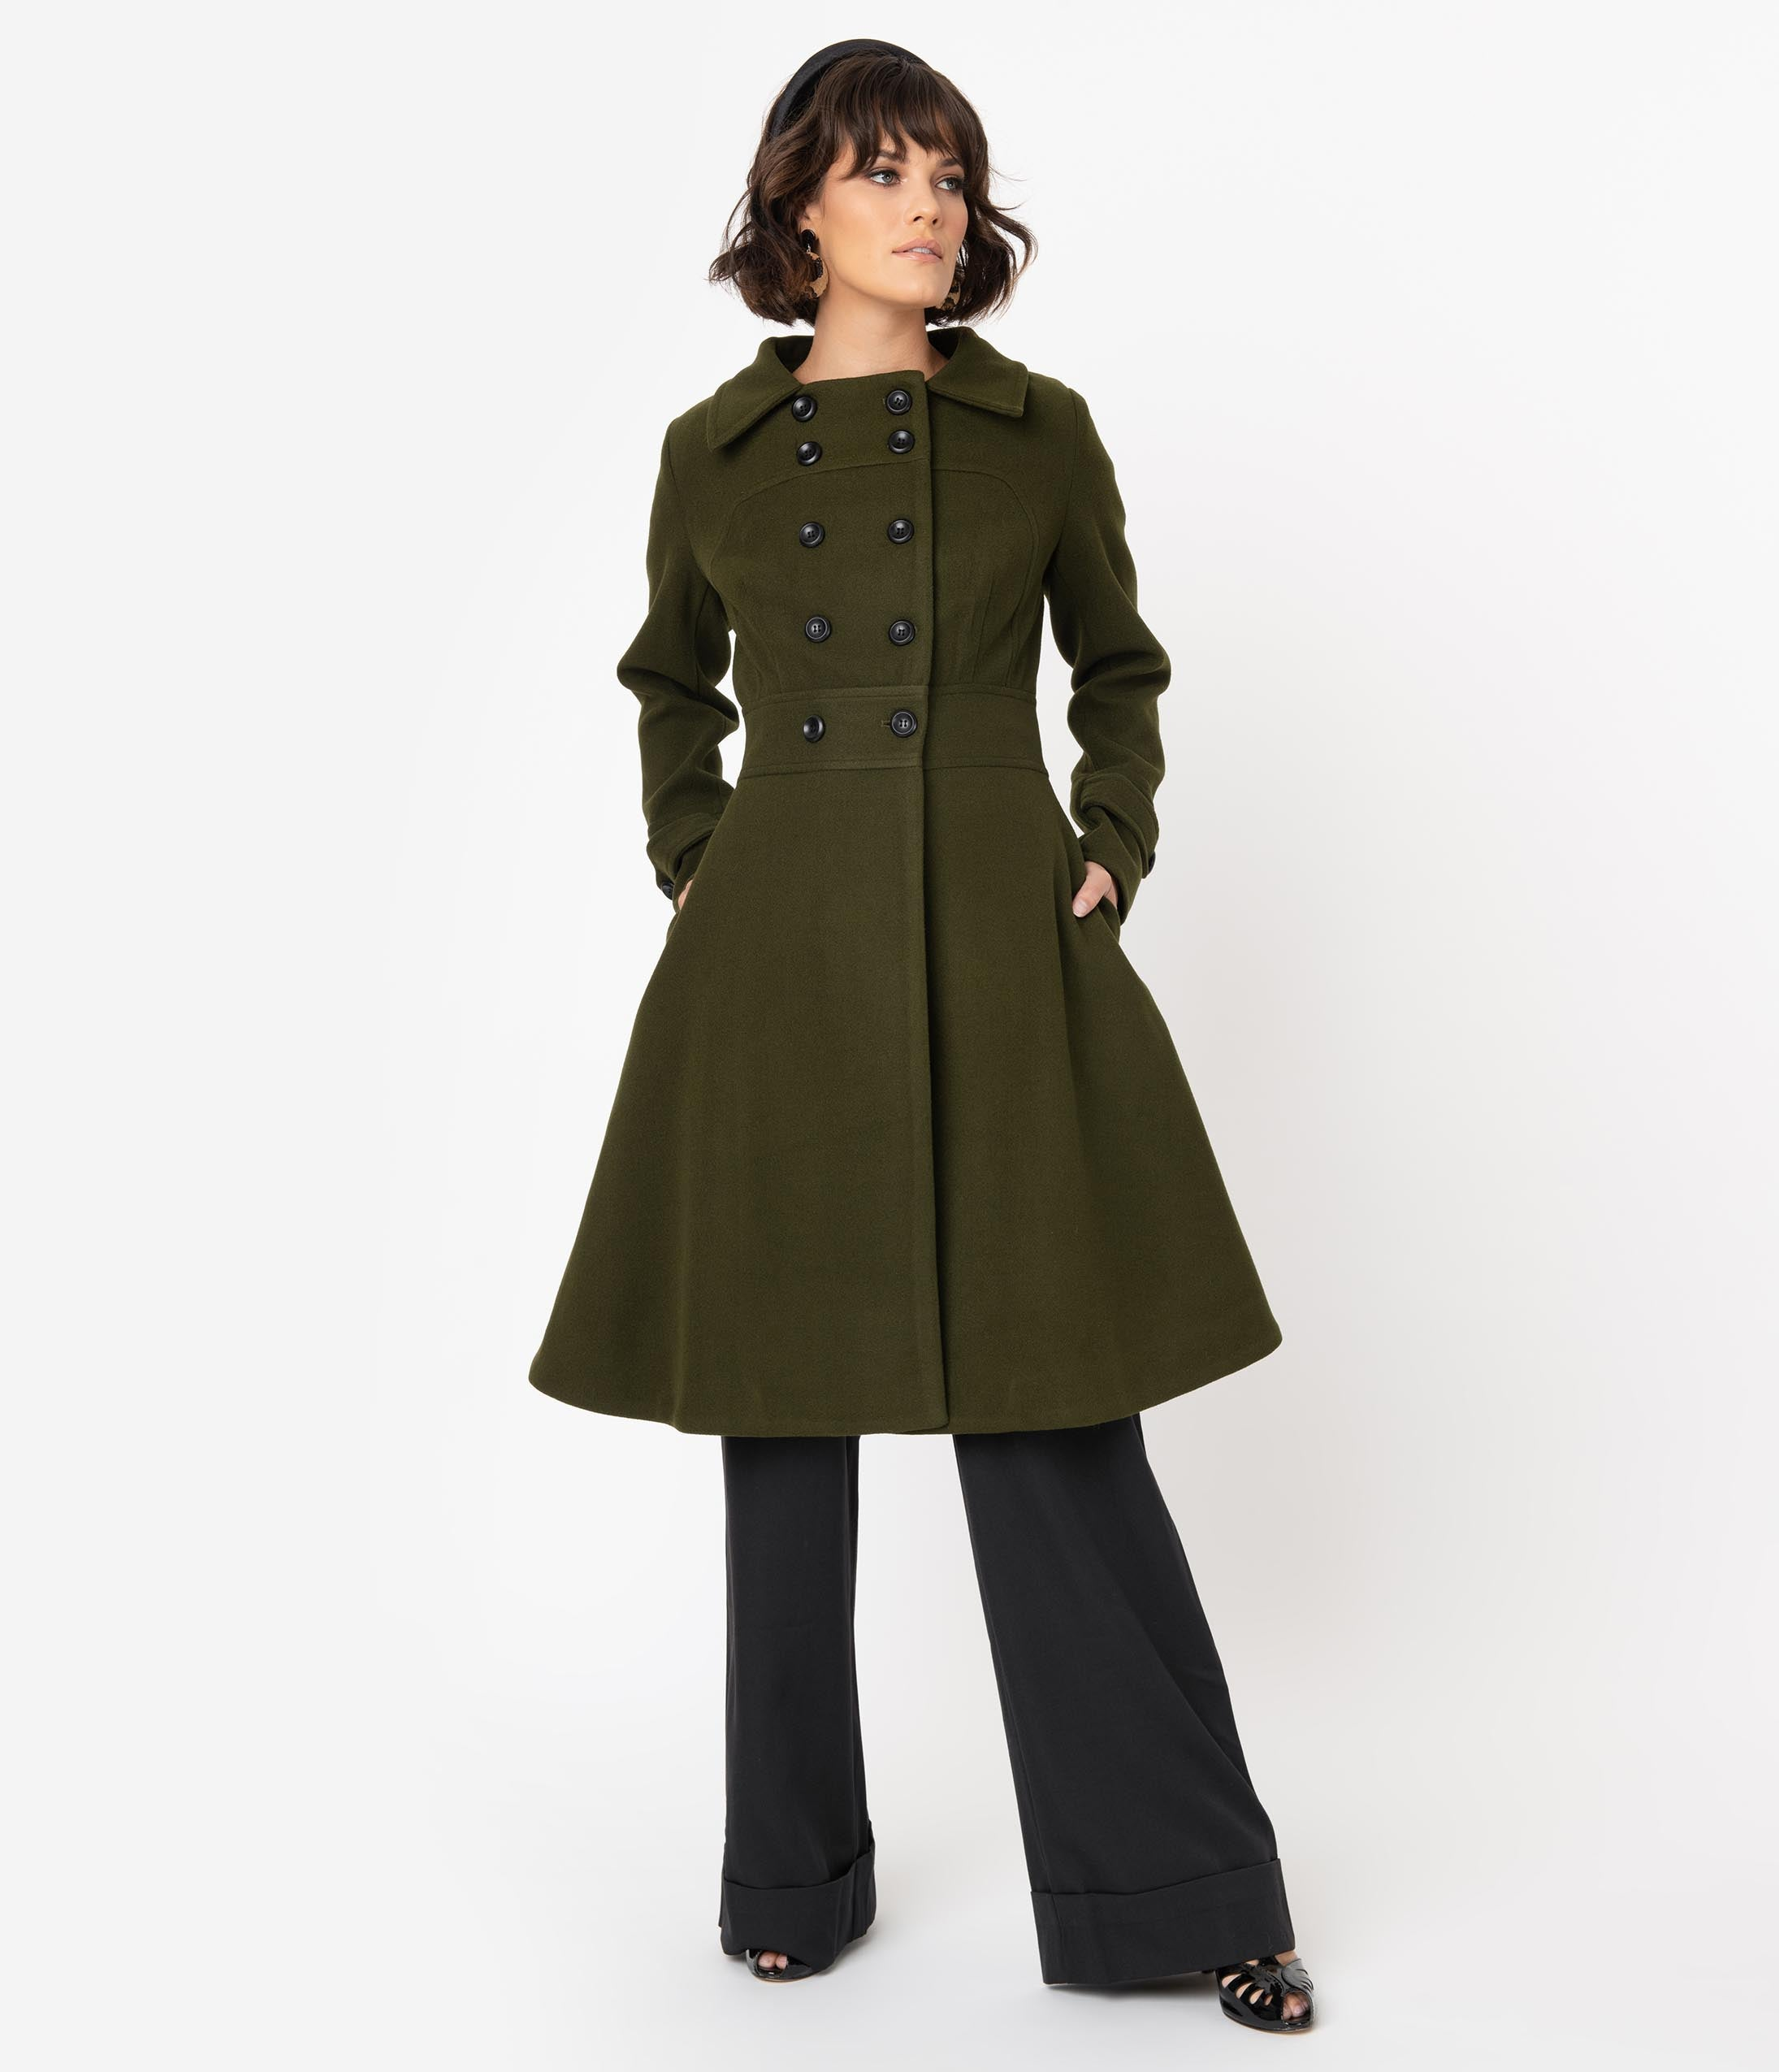 Vintage Coats & Jackets | Retro Coats and Jackets Voodoo Vixen Army Green Double Breasted Military Coat $148.00 AT vintagedancer.com